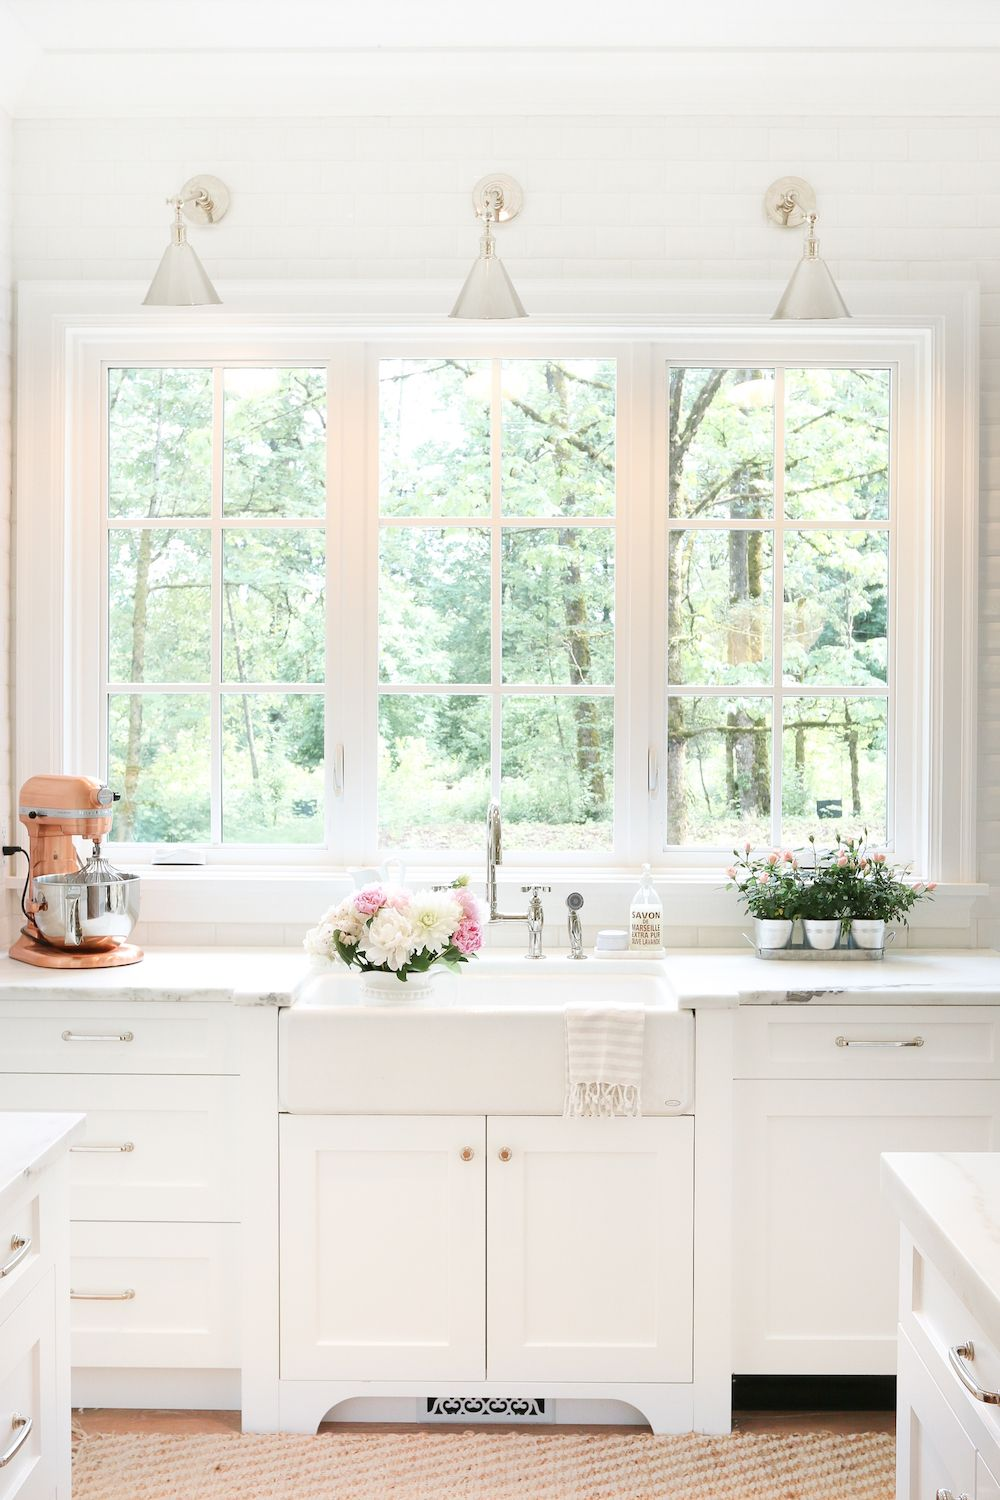 Window above kitchen sink  triple window farmhouse sink sconces nice light and bright